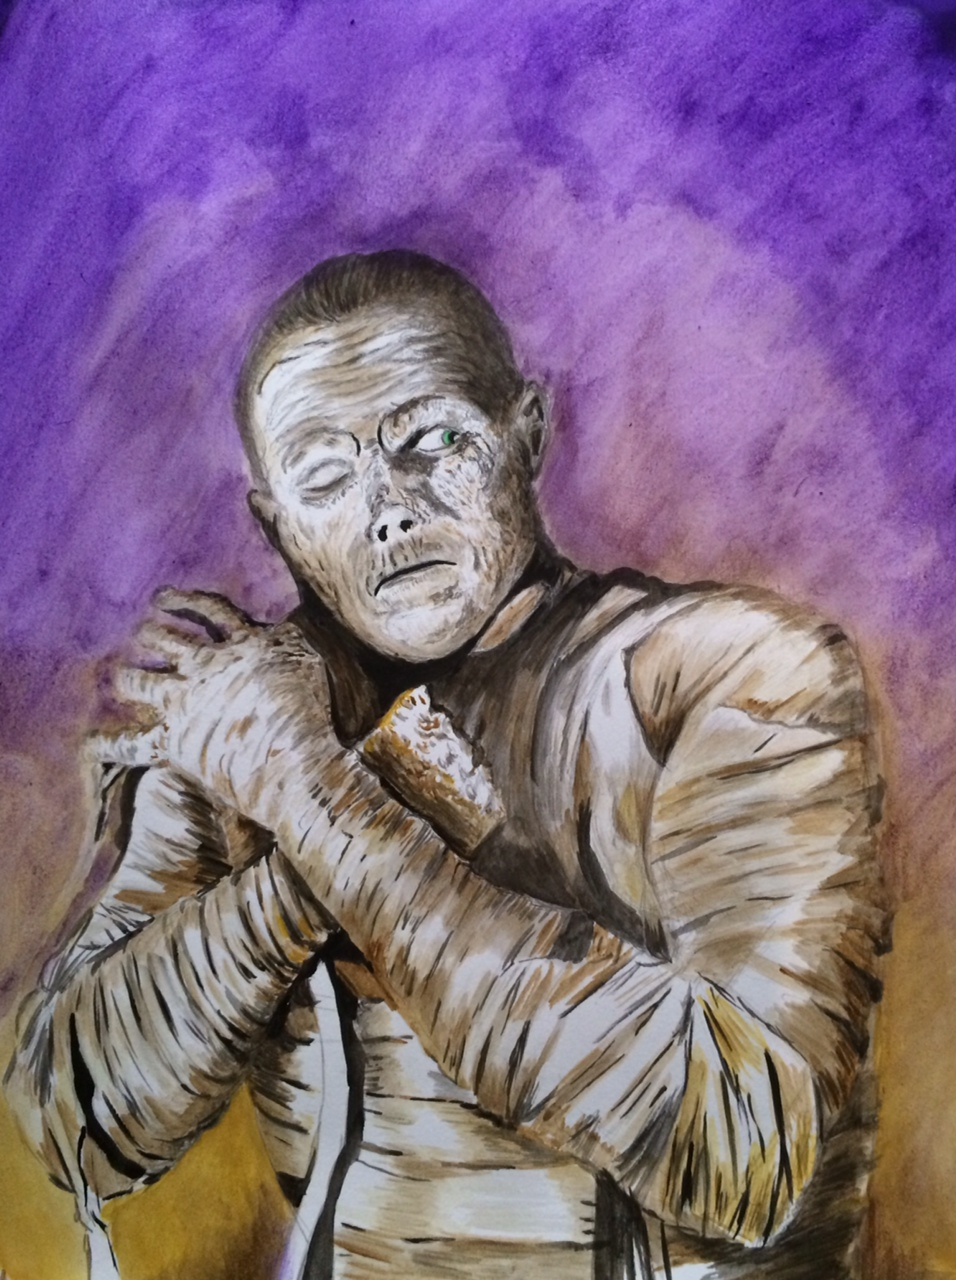 Lon Chaney Jr. as The Mummy. Painting by Monstermatt Patterson